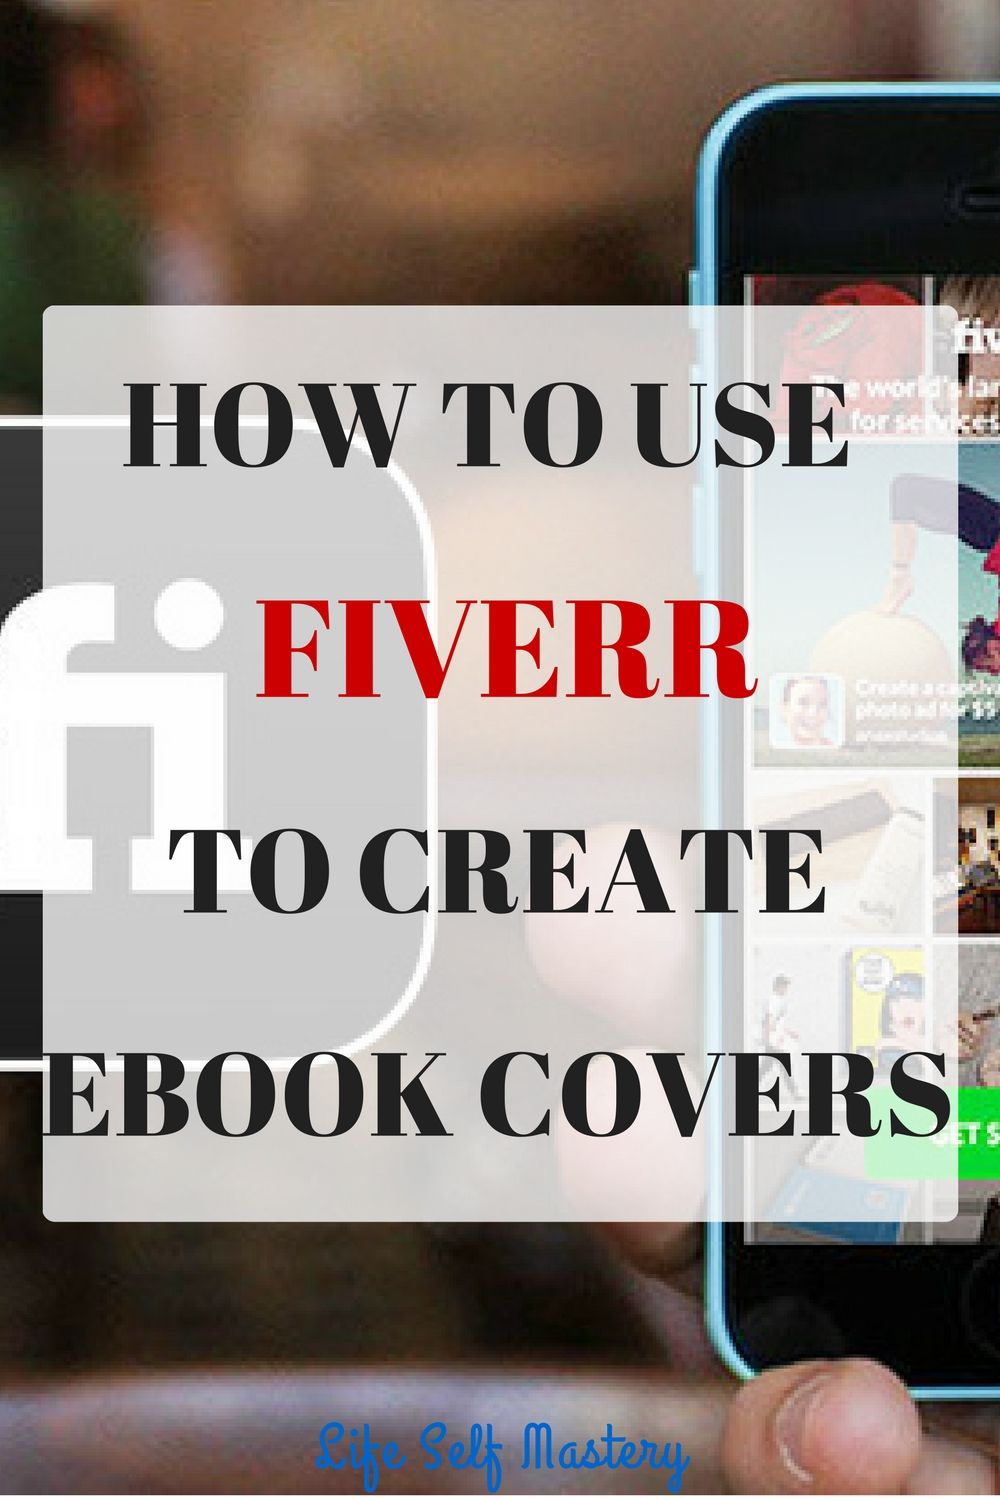 How to use Fiverr to create Ebook covers which will sell